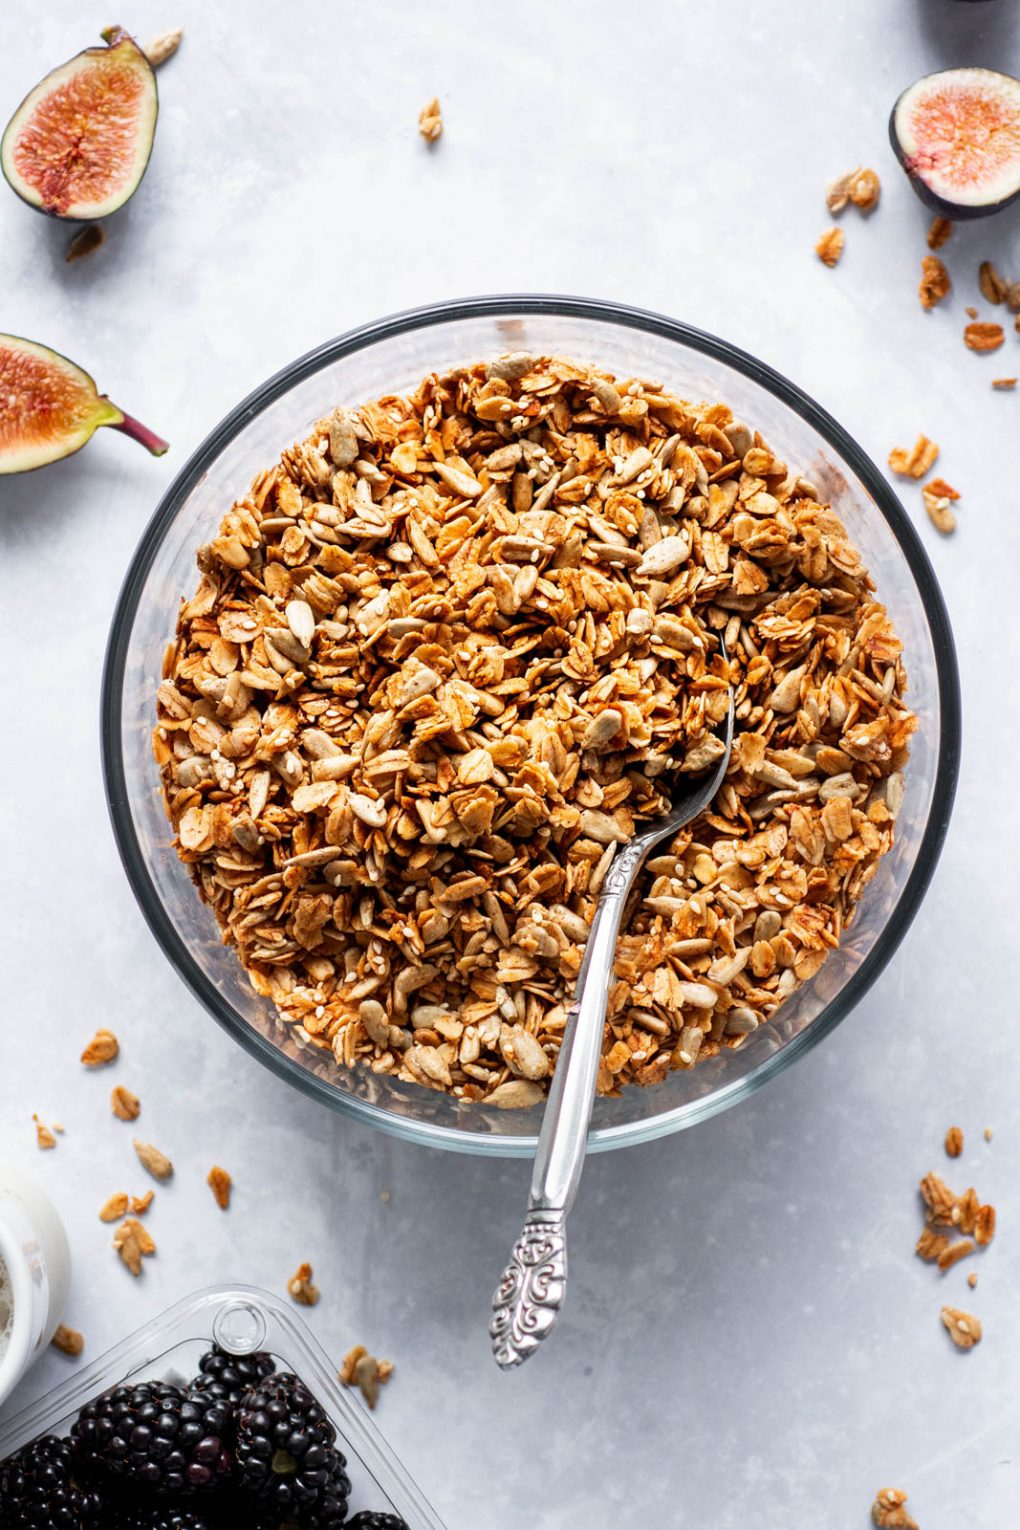 overhead shot of a large glass pyrex dish full of toasty granola with a silver spoon angled in. On a white background next to cut figs and scattered granola